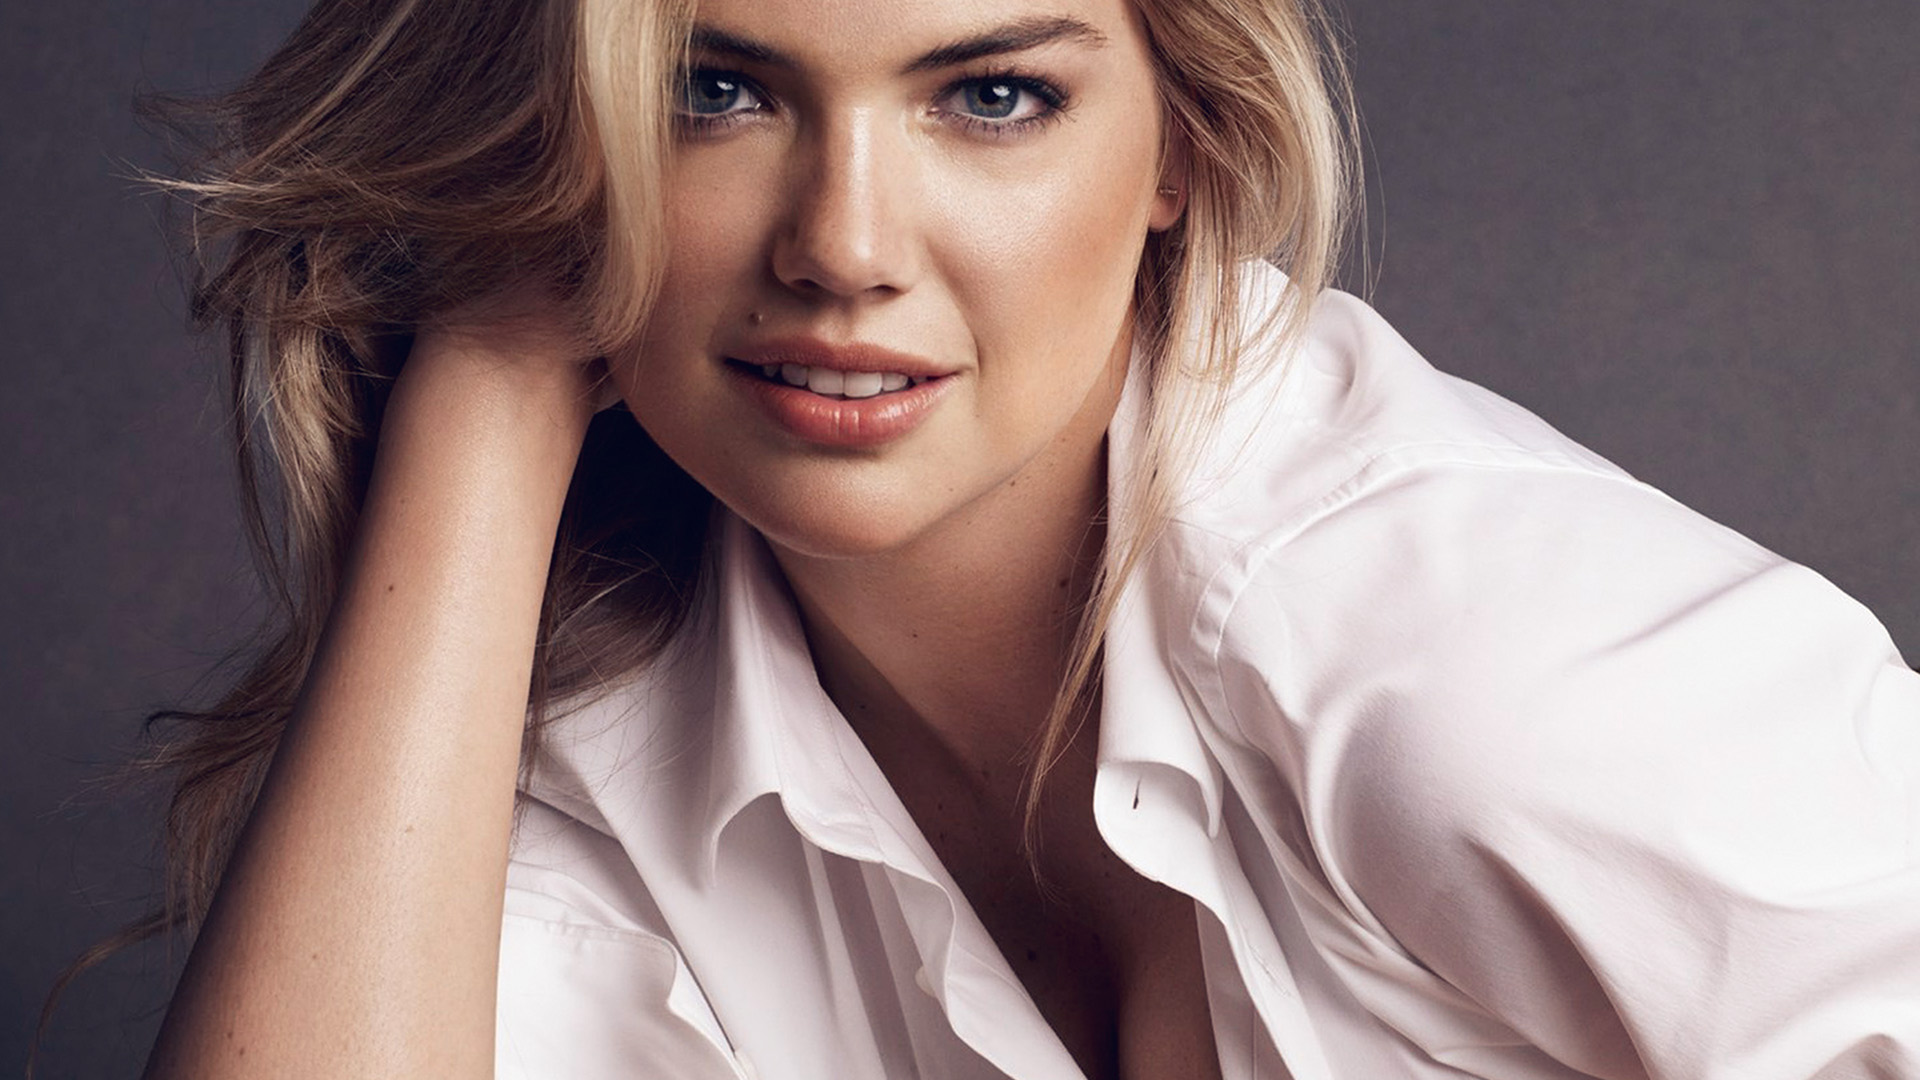 Wallpaper Sunrise At Fall Hm61 Kate Upton Girl Model Wallpaper